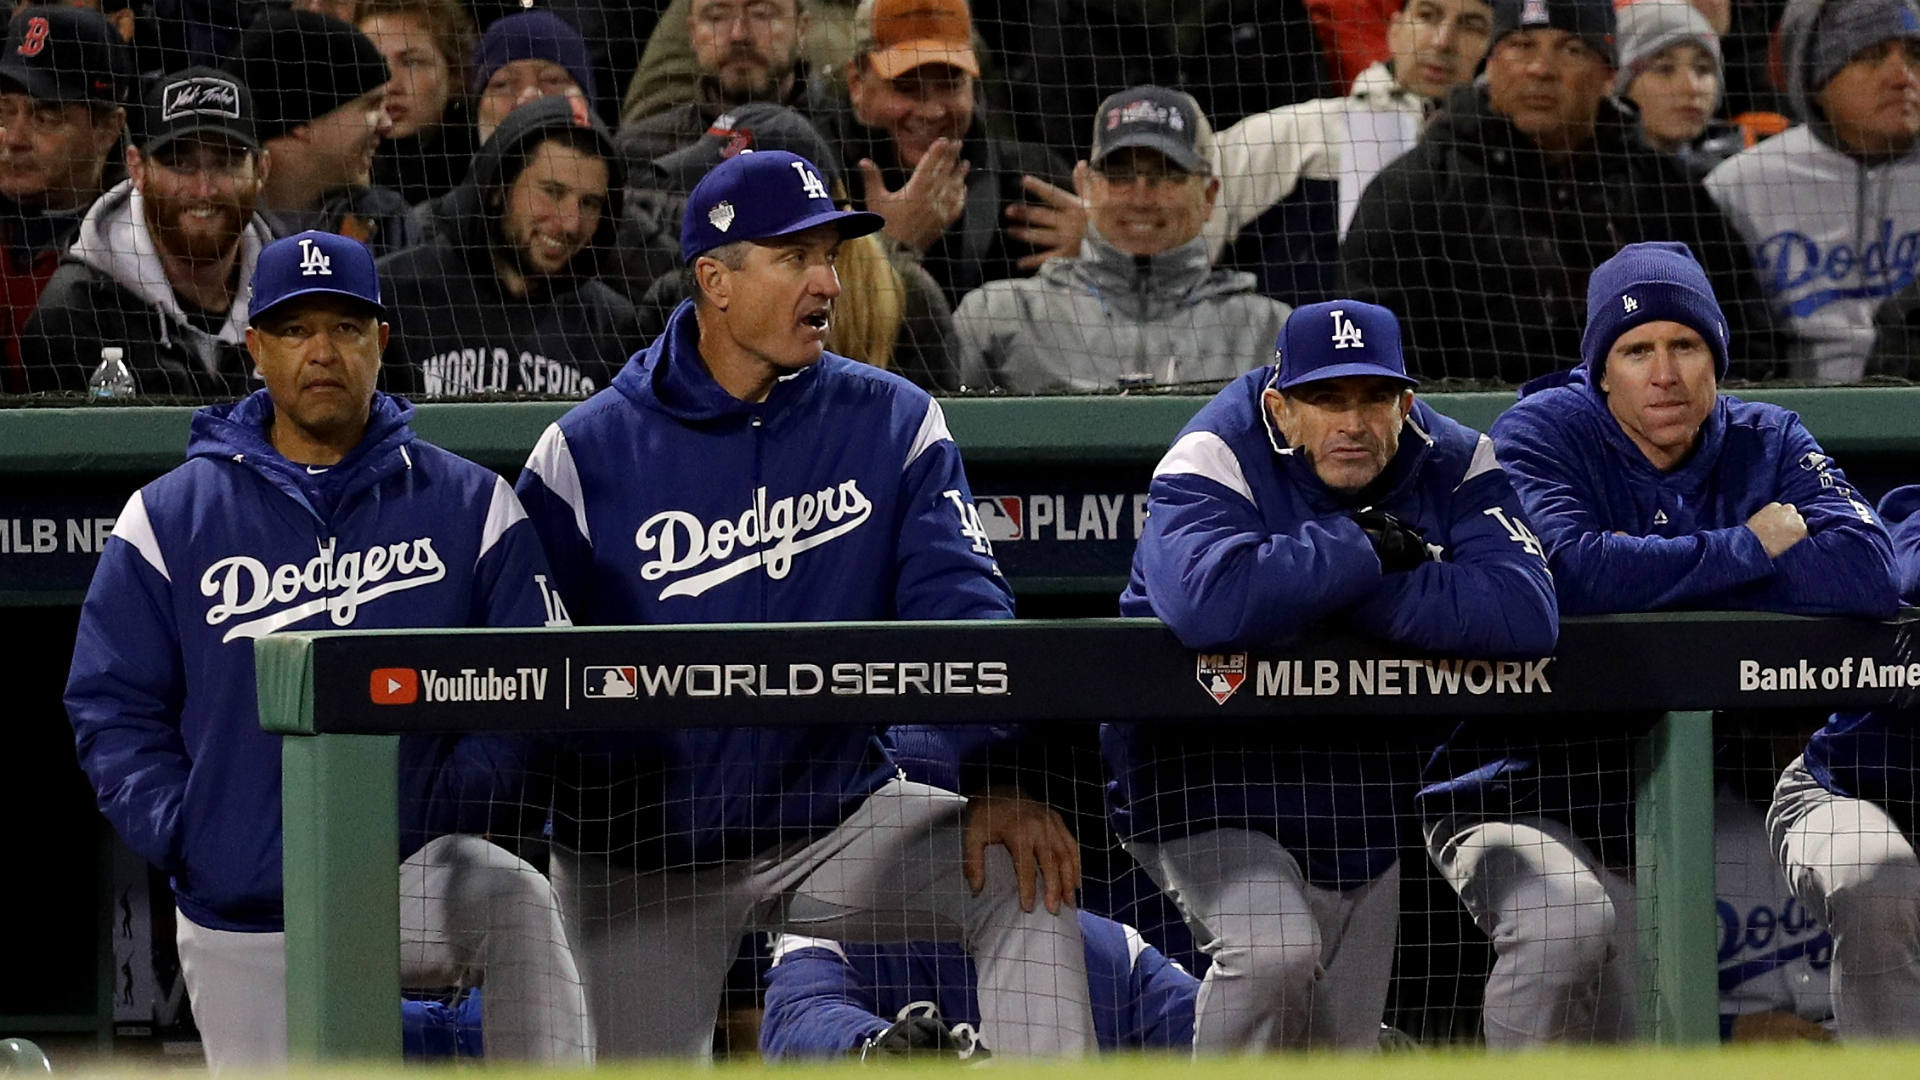 Clayton Kershaw to start World Series Game 5